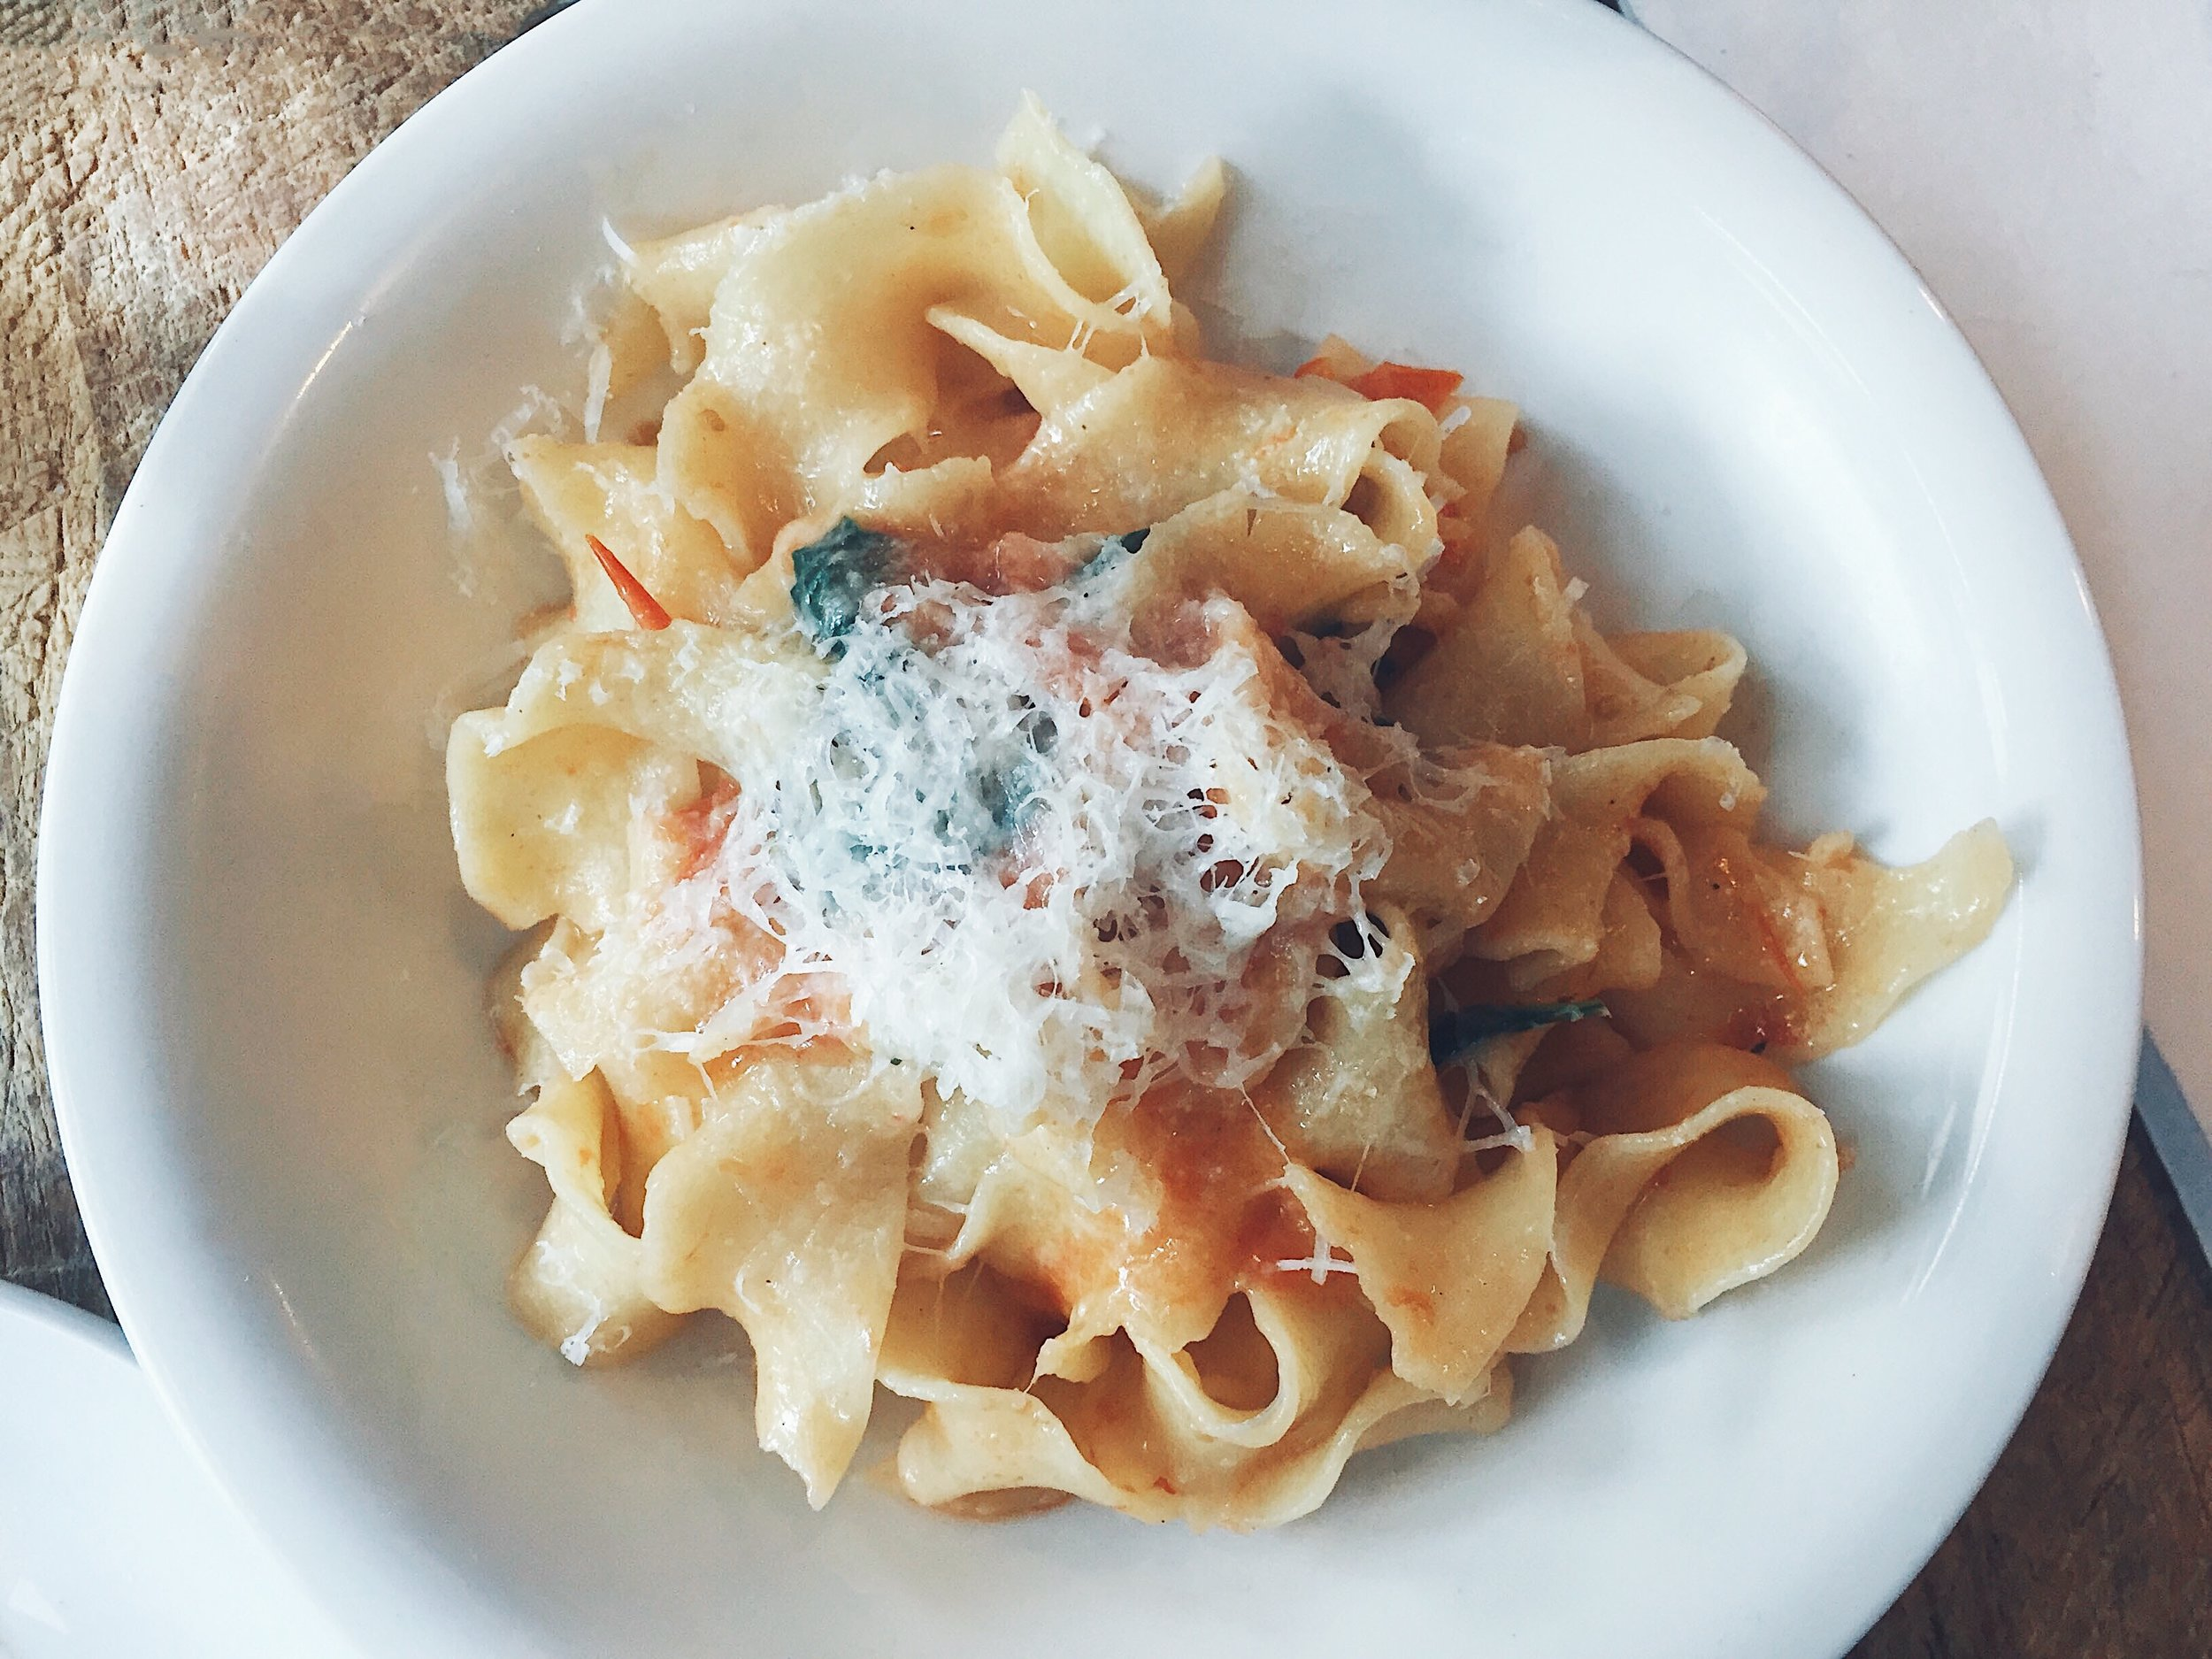 Annabelle | Pappardelle in confit tomato with basil.